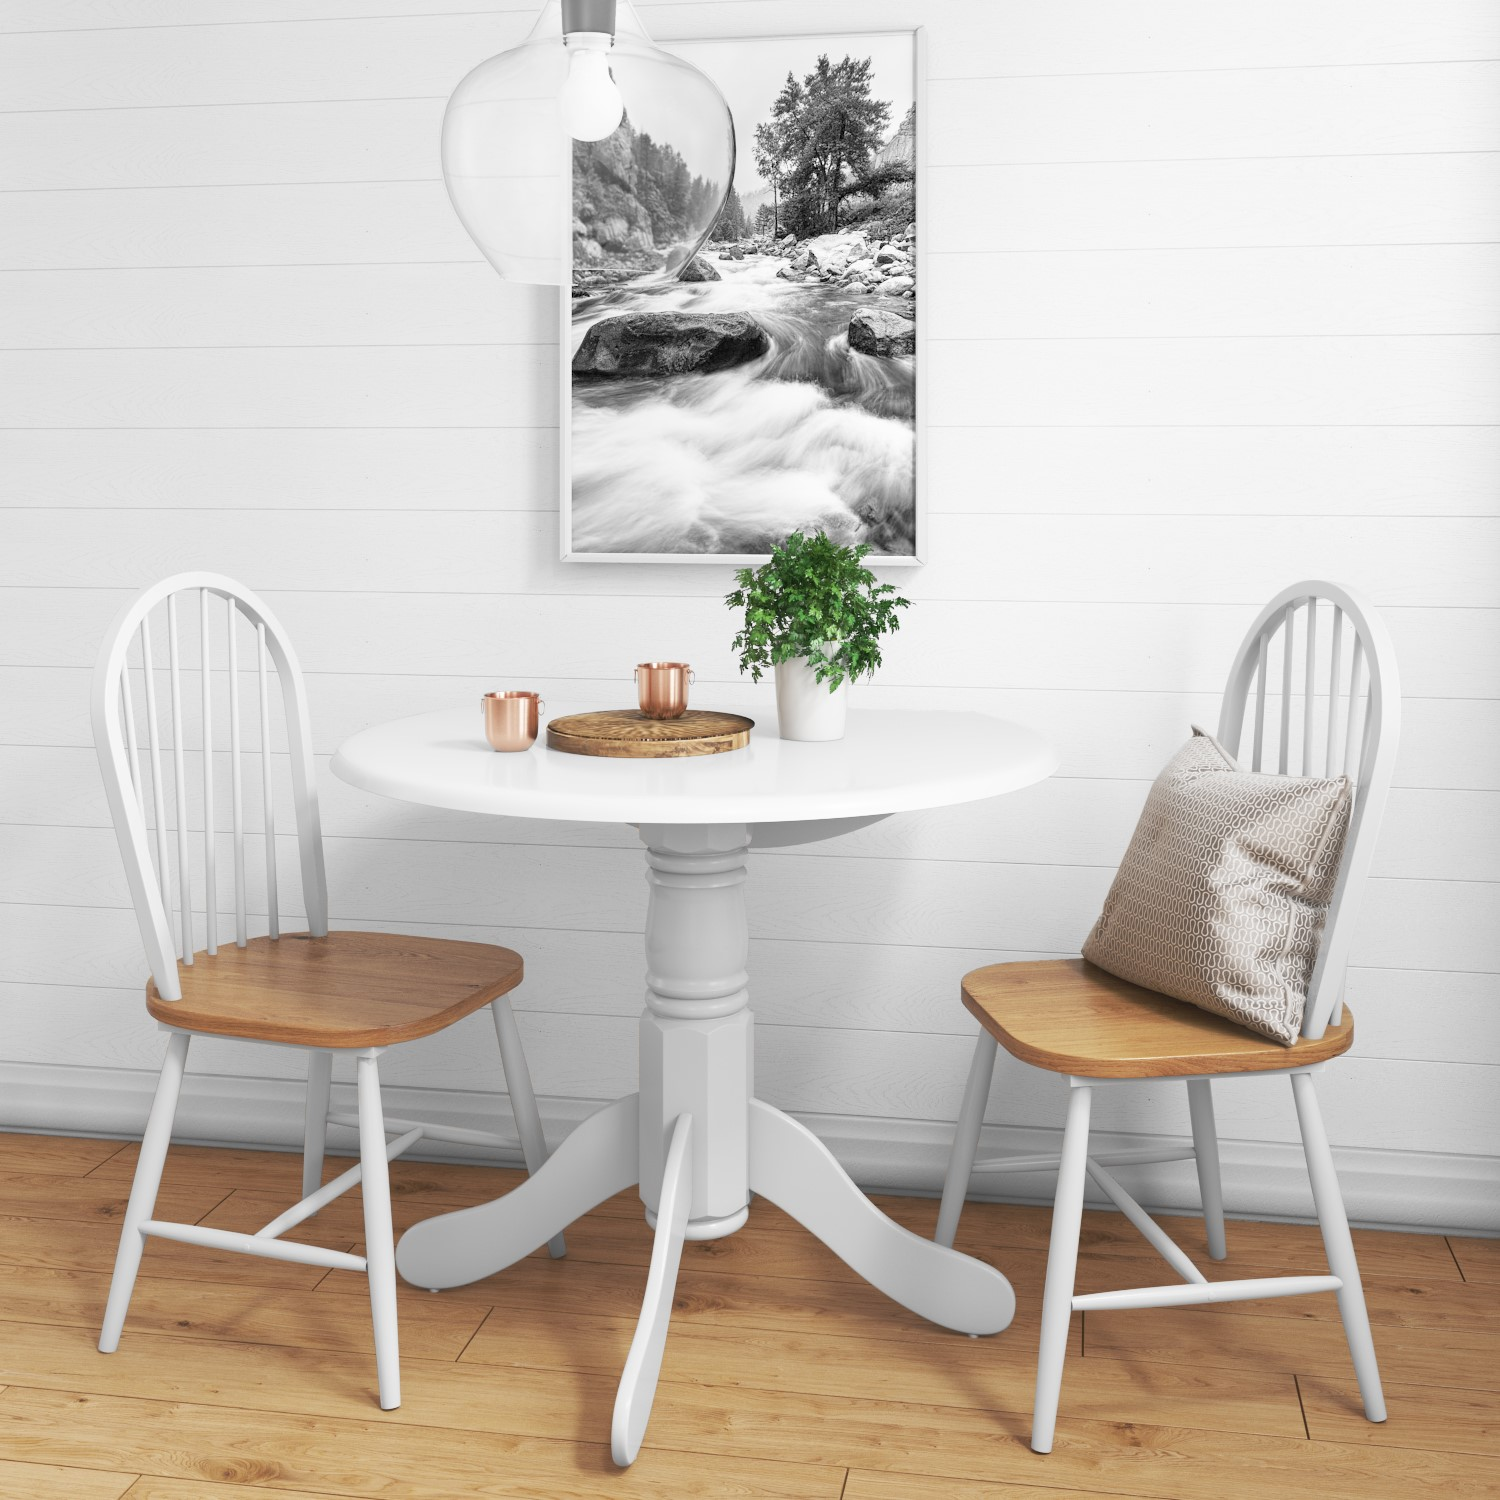 Small Round Dining Table in White with 2 Chairs - Rhode Isla